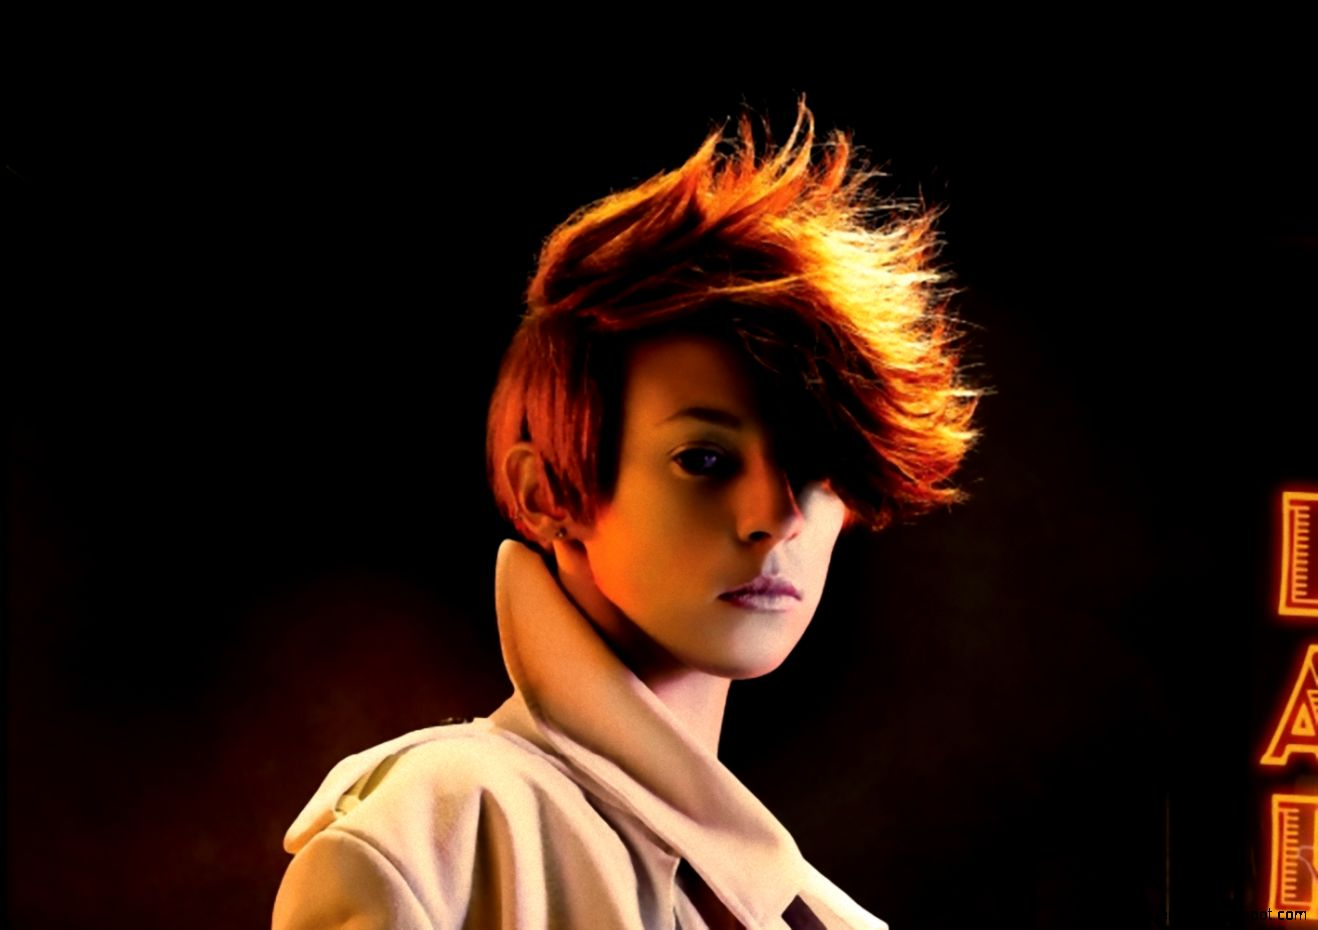 Wallpapers La Roux Hd Sin City 15556608 1418x1000  1555661 la roux